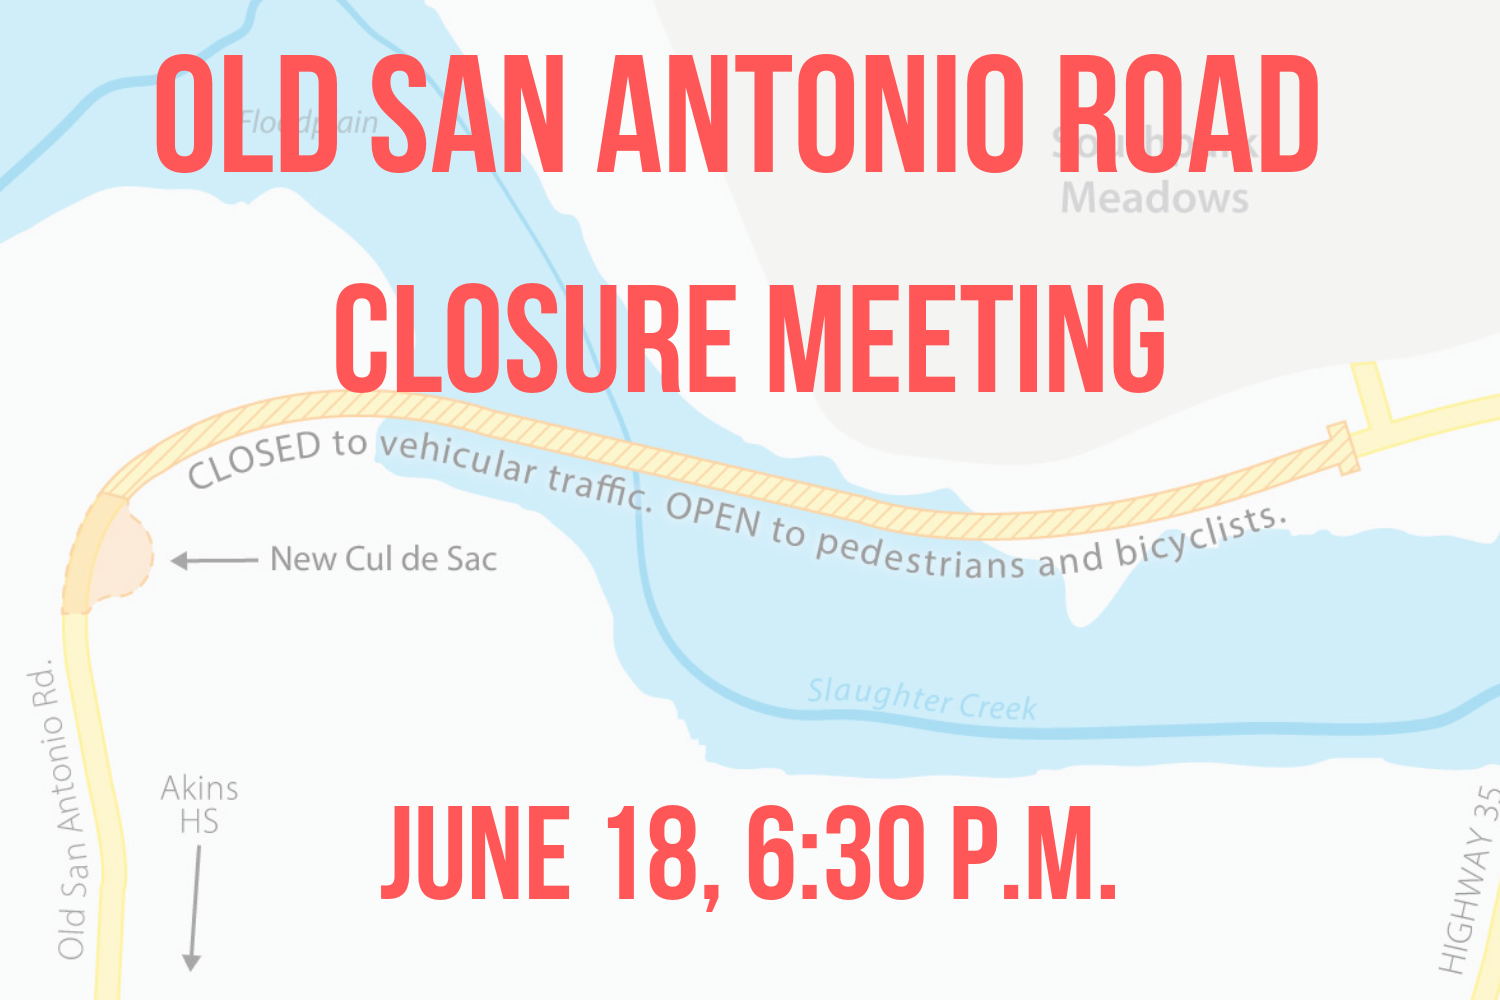 The City of Austin's Watershed Protection office announced in late March that the city would be closing a section of Old San Antonio Road near Akins High School that includes a dangerous hilly curve and low-water crossing that floods during heavy rains. The city will host a meeting on June 18 to discuss a proposal to close the road.